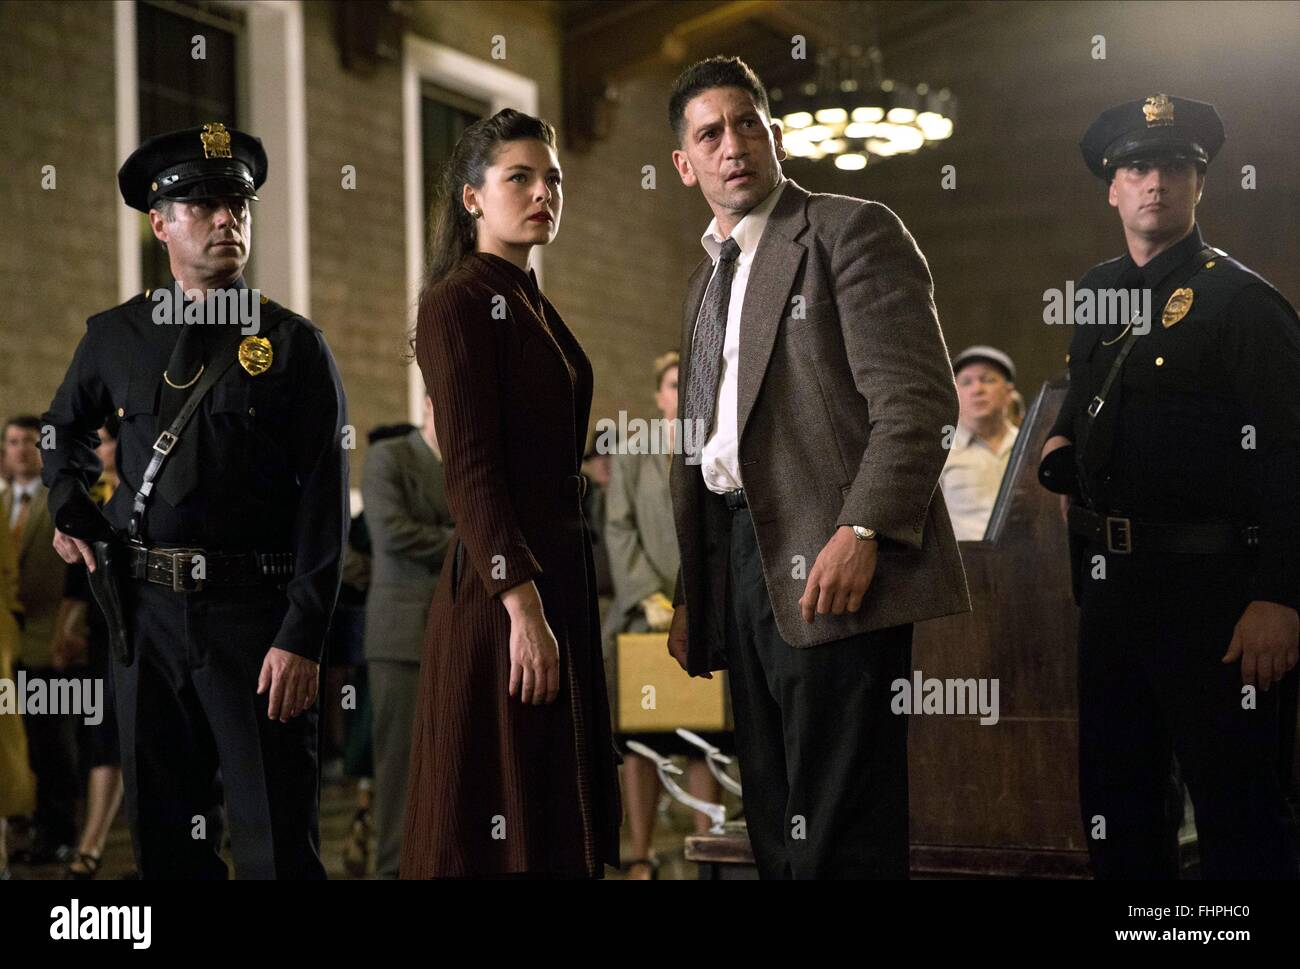 Alexa Davalos Mob City: ALEXA DAVALOS & JON BERNTHAL MOB CITY (2013 Stock Photo